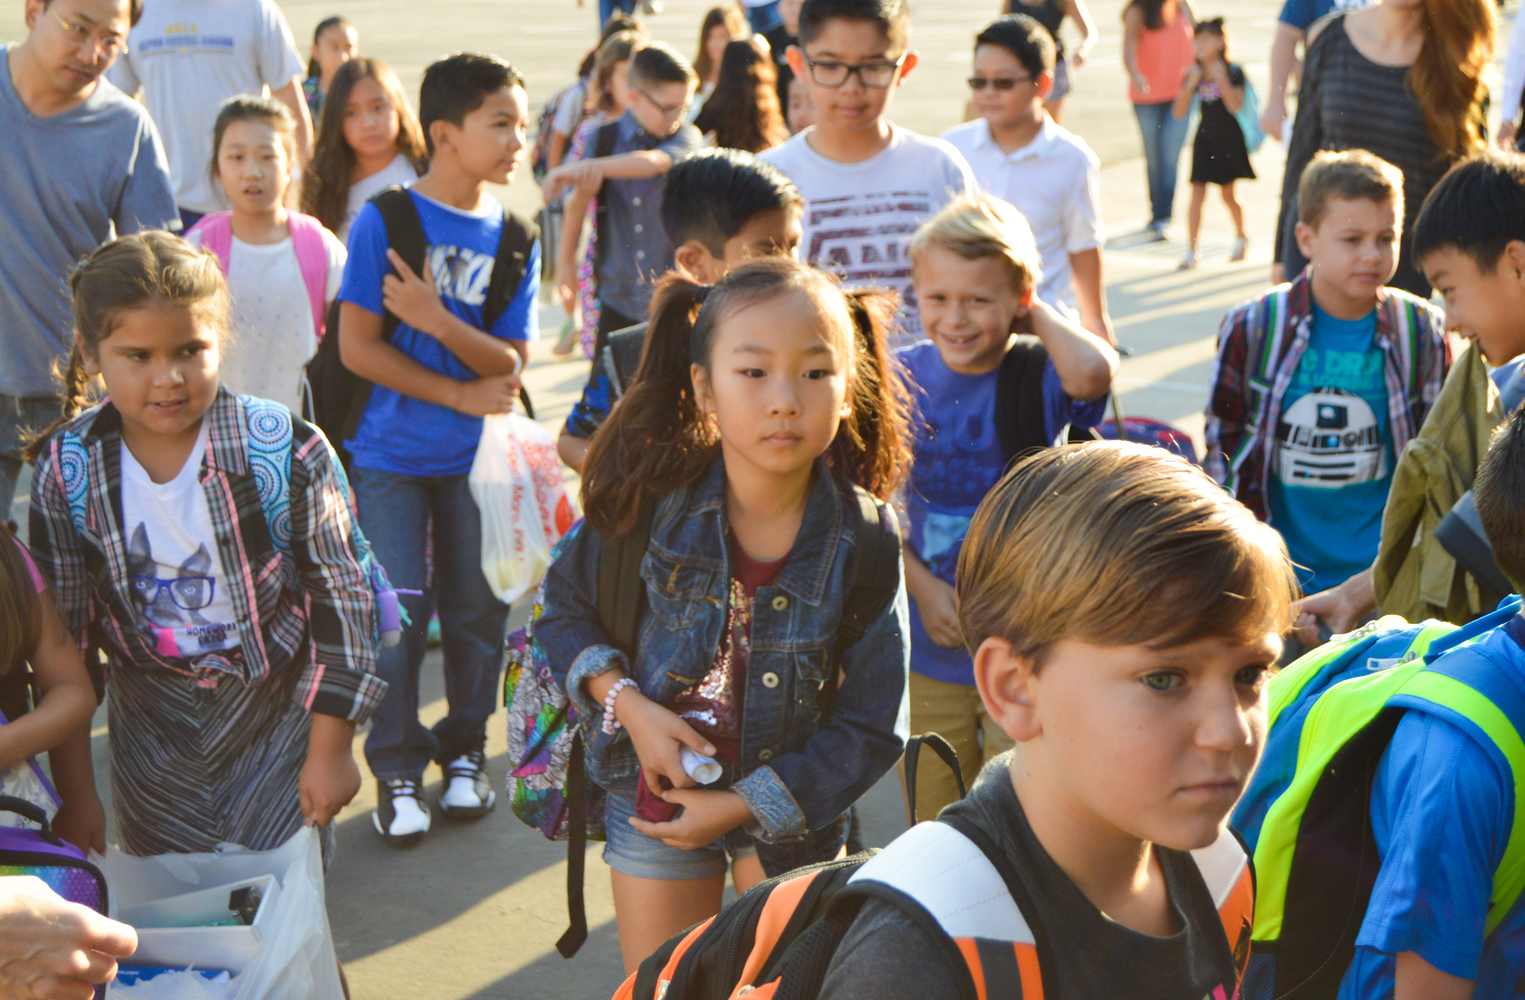 Students excited for the first day of school.